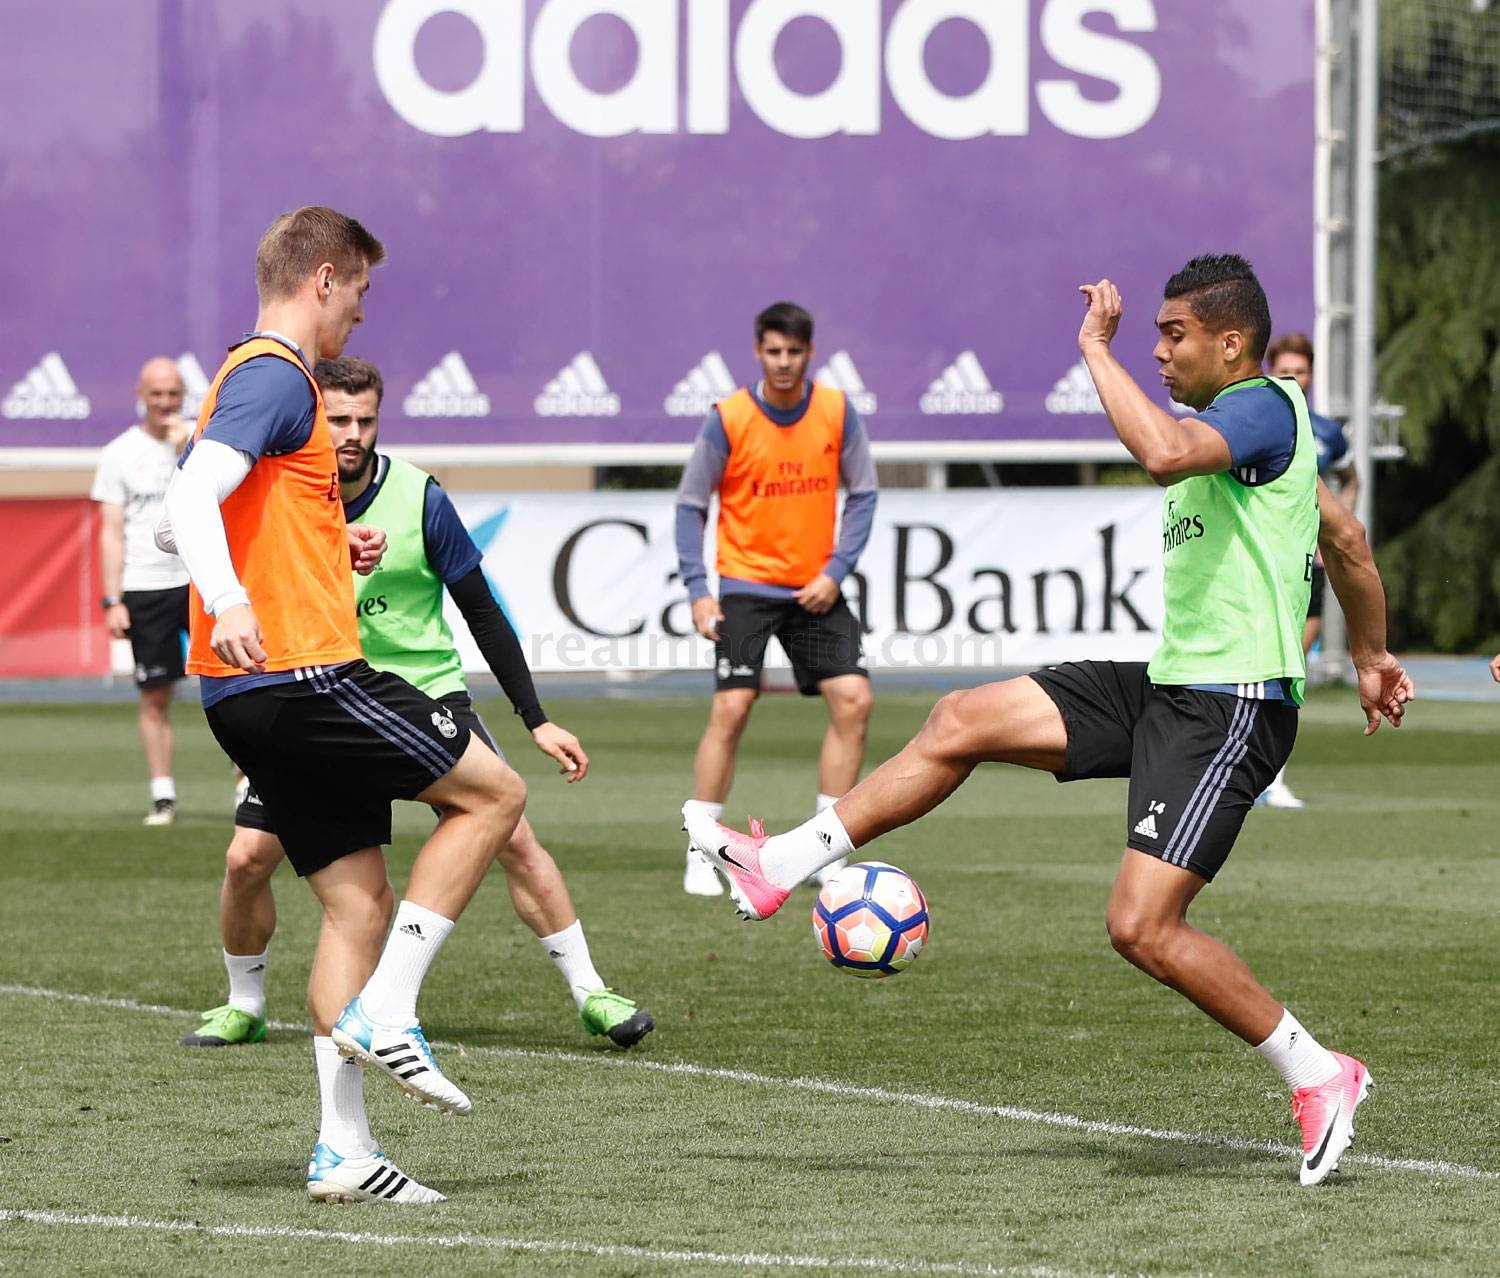 Real Madrid - Entrenamiento del Real Madrid - 16-05-2017